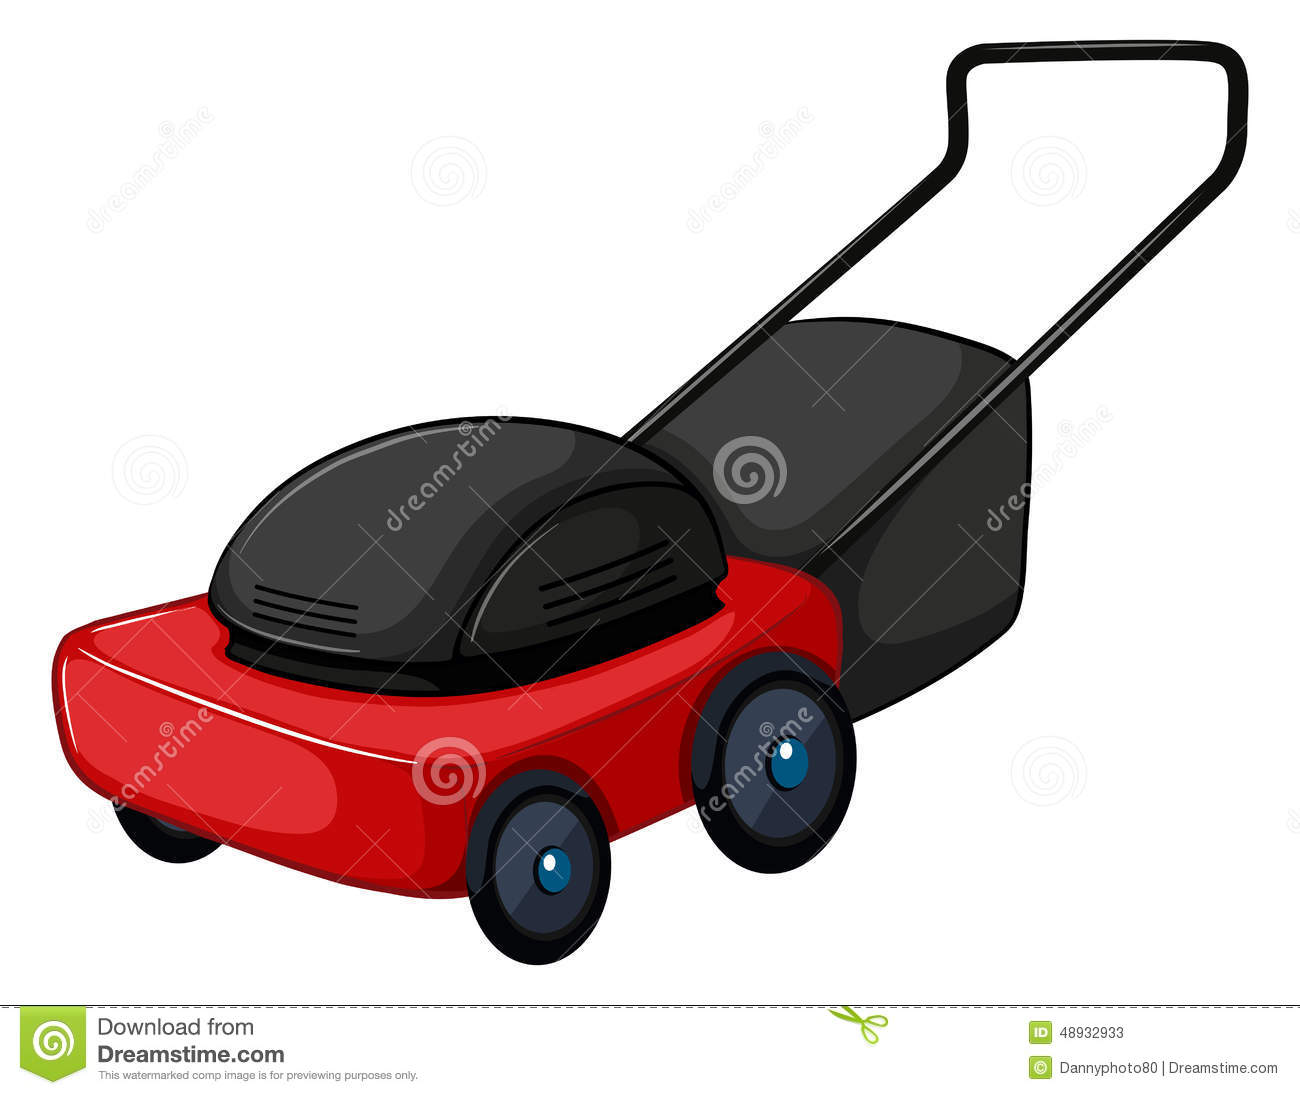 Lawnmower Illustration Vector Illustration | CartoonDealer ...